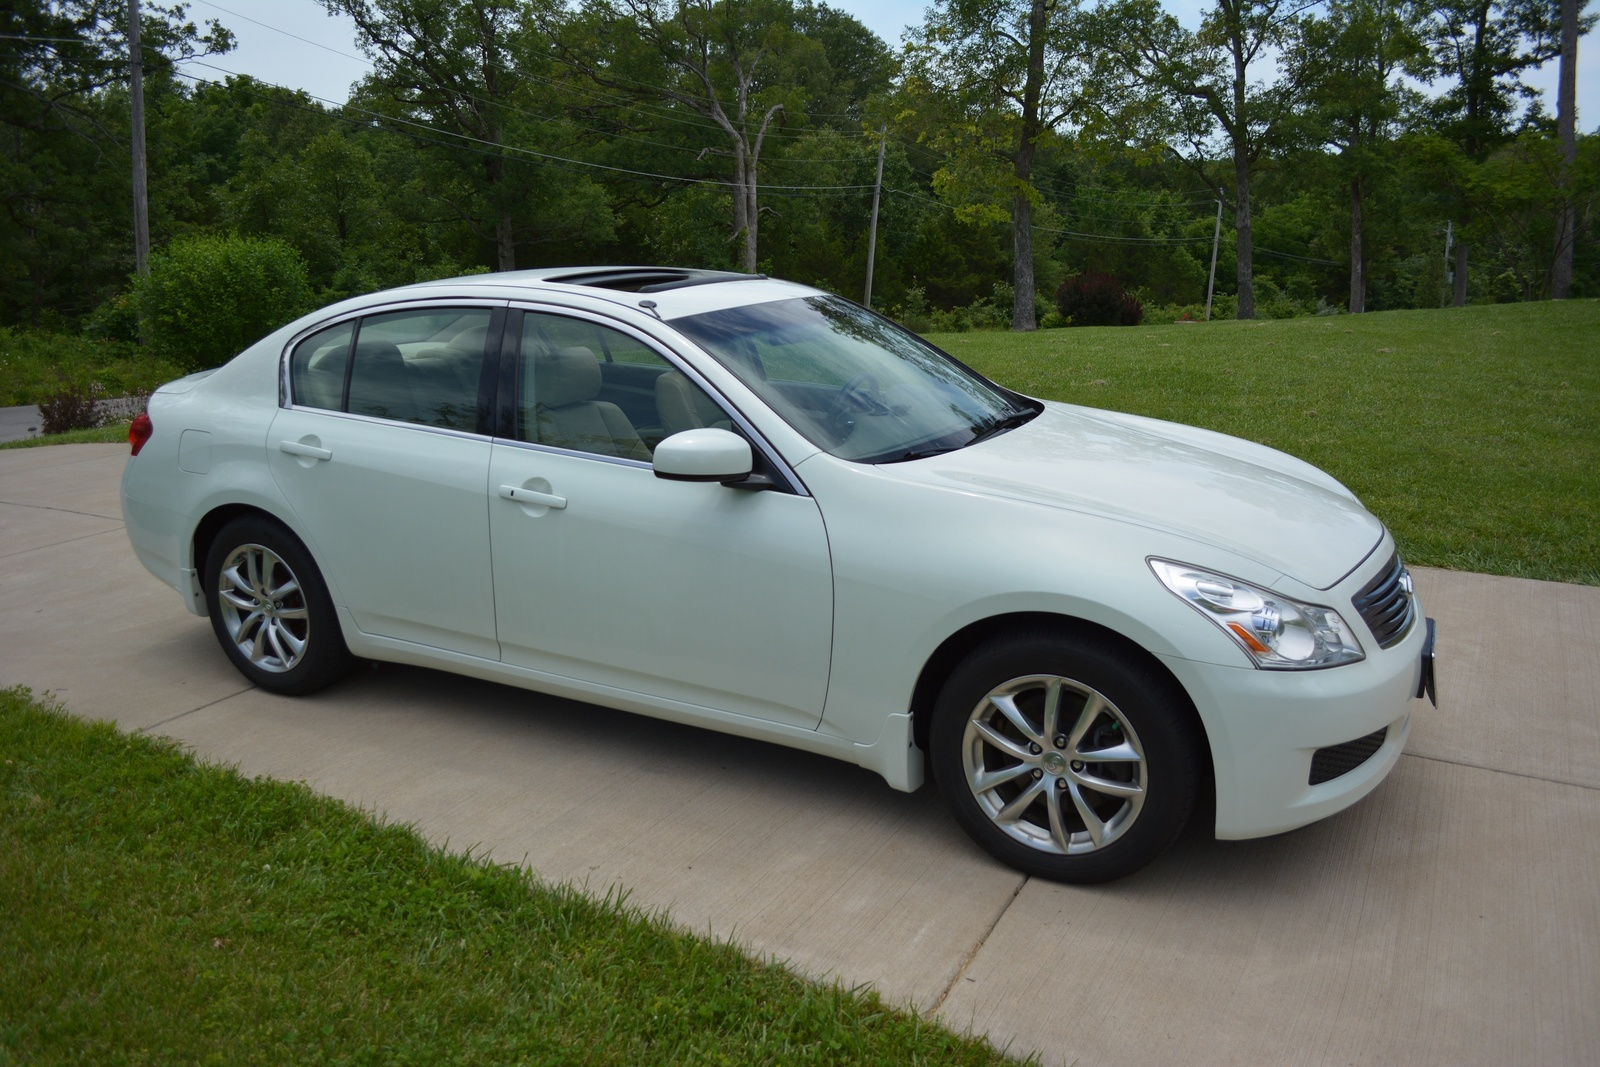 2007 Infiniti G35 Pictures C7305 pi36930874 additionally 2014 Infiniti Q50 Overview C23868 further 2017 Infiniti Qx50 furthermore Infiniti Q60 Concept First Look further Infiniti M56 Wheels. on infinity m56